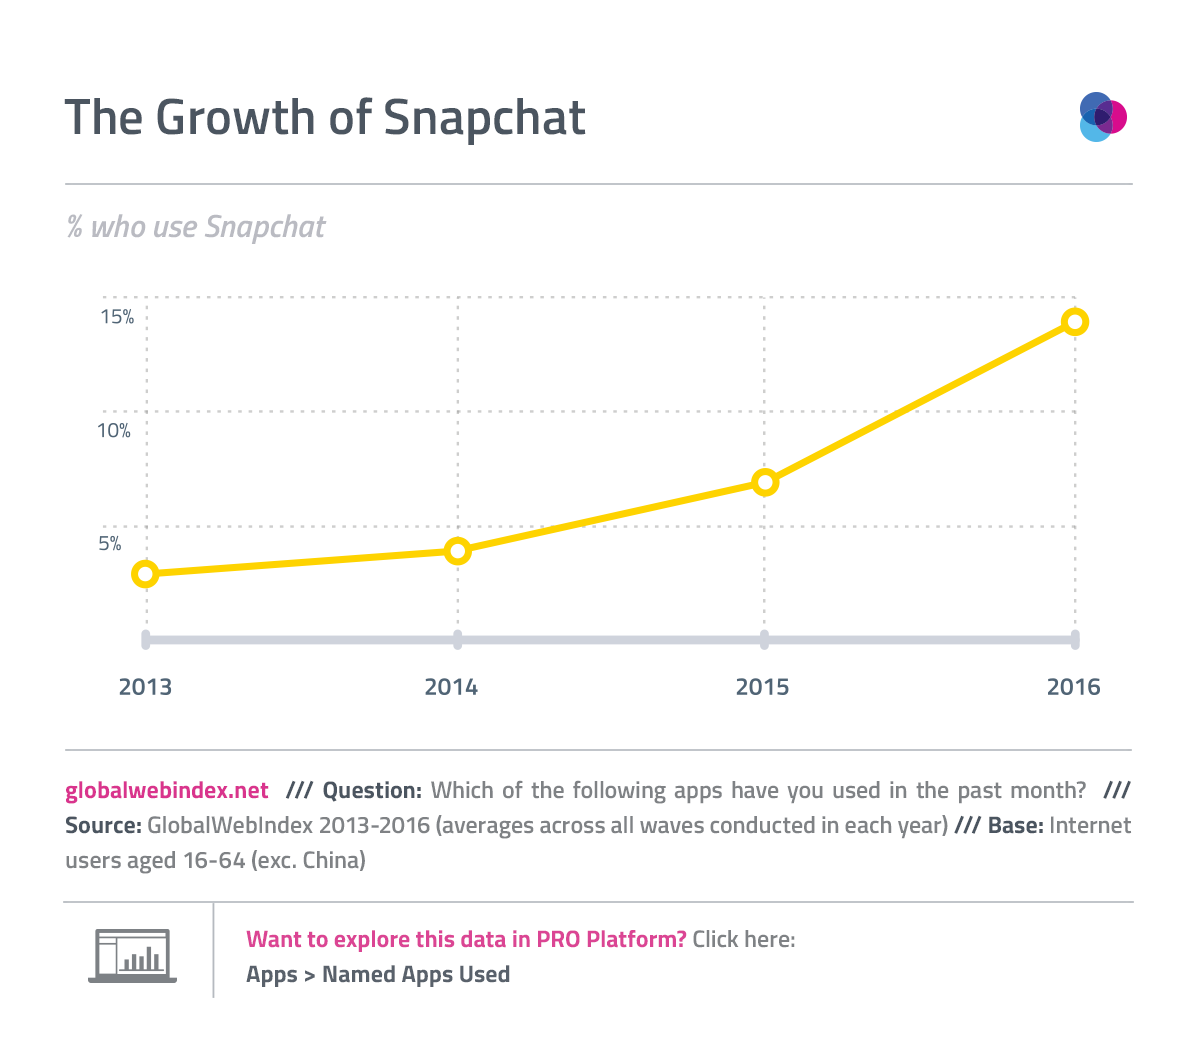 The Growth of Snapchat